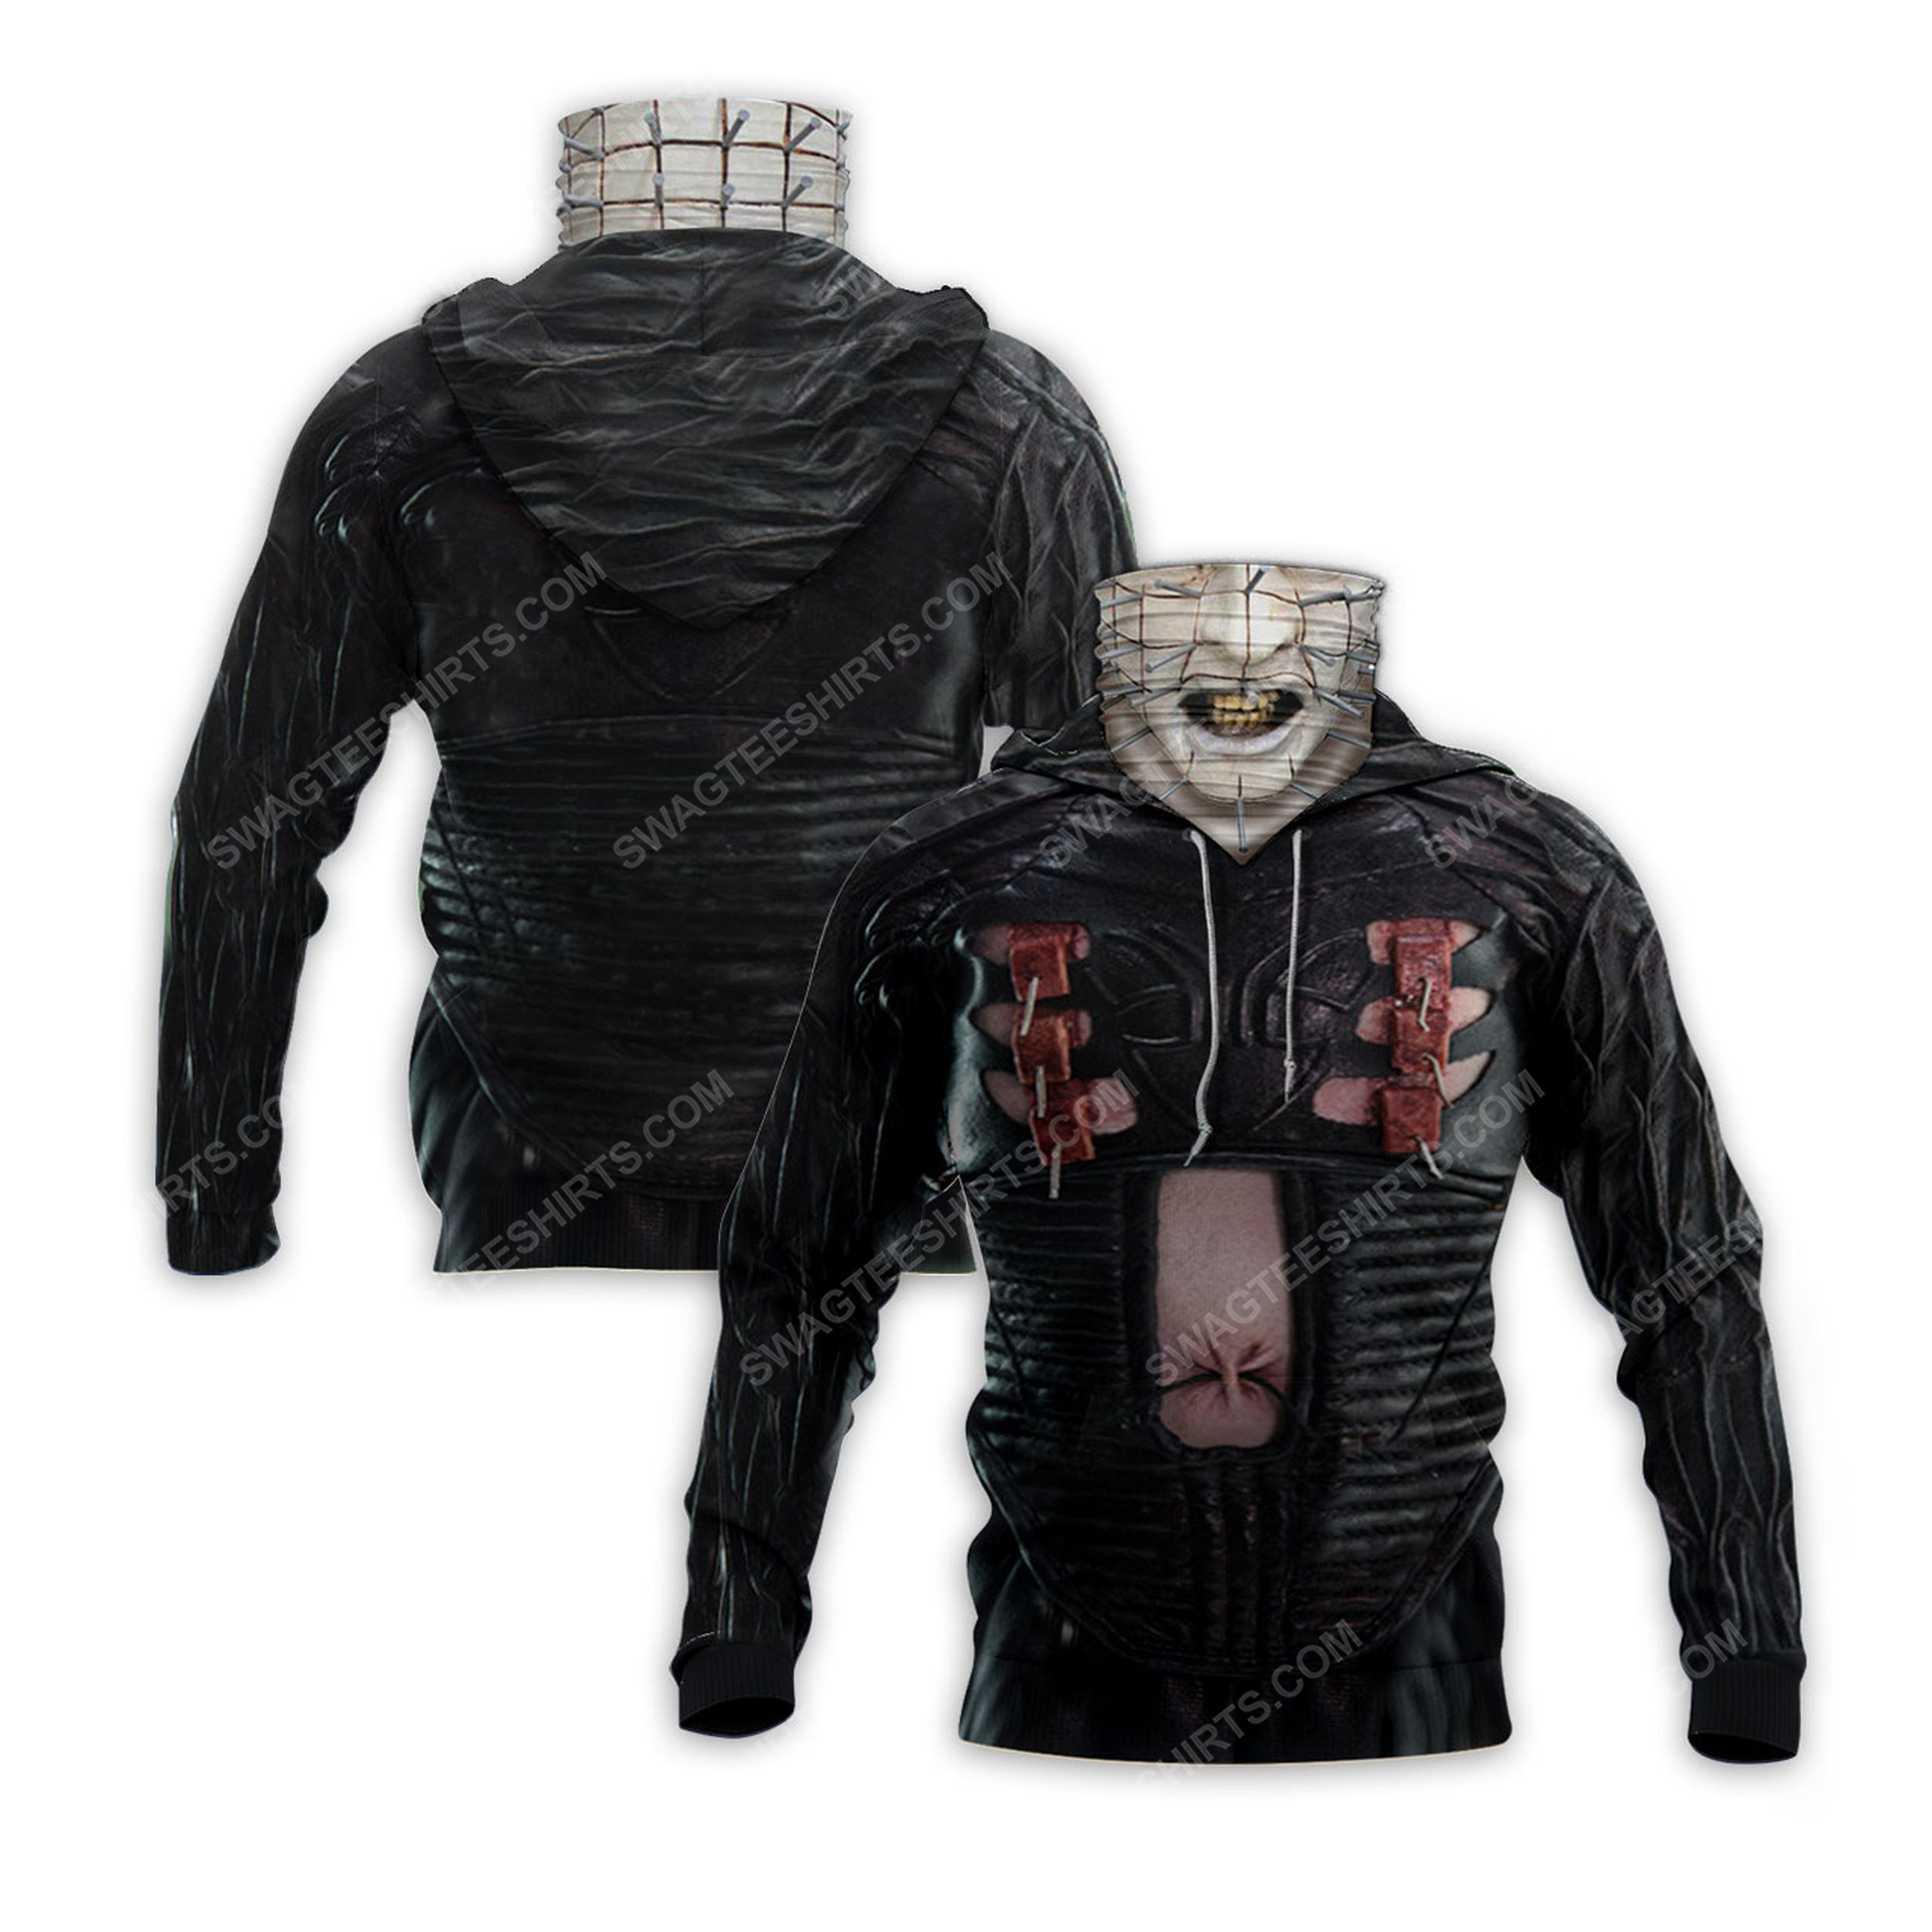 Pinhead the hell priest for halloween full print mask hoodie 2(1)